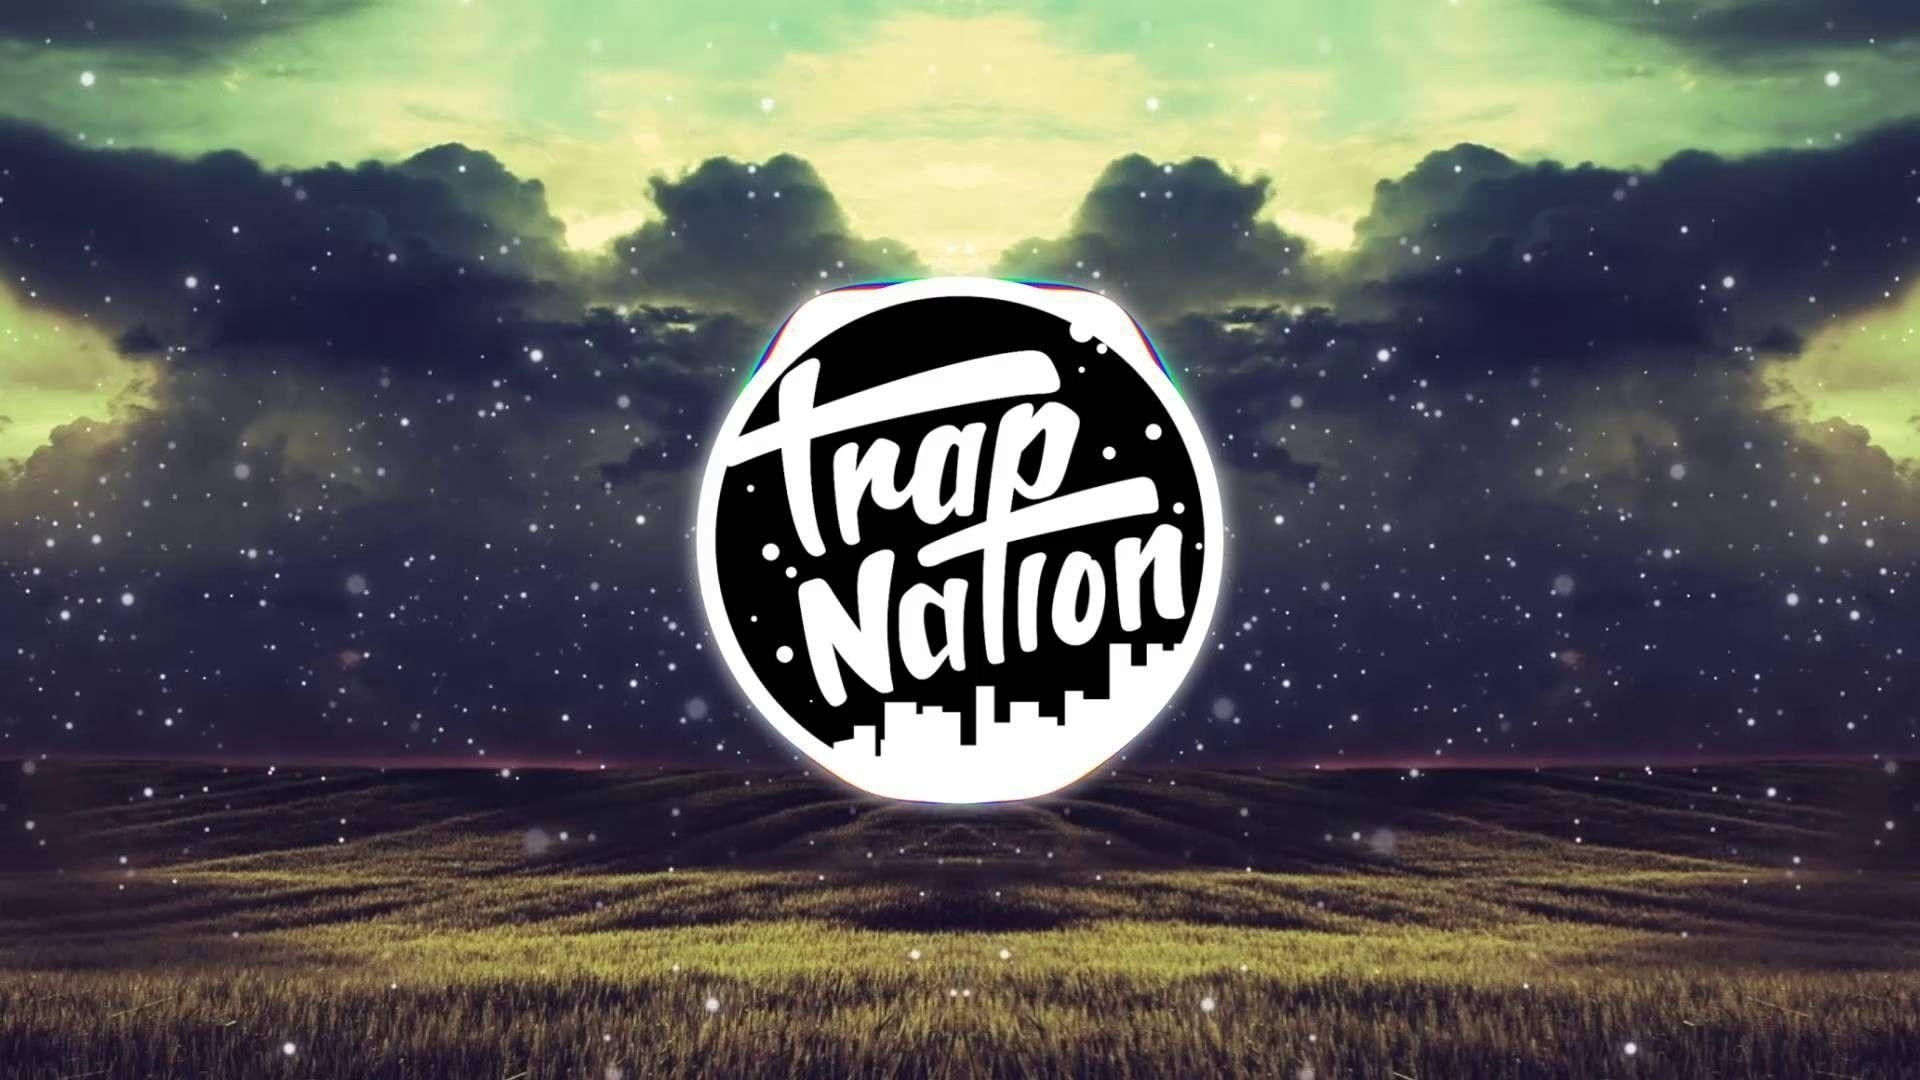 trap nation wallpapers - wallpaper cave